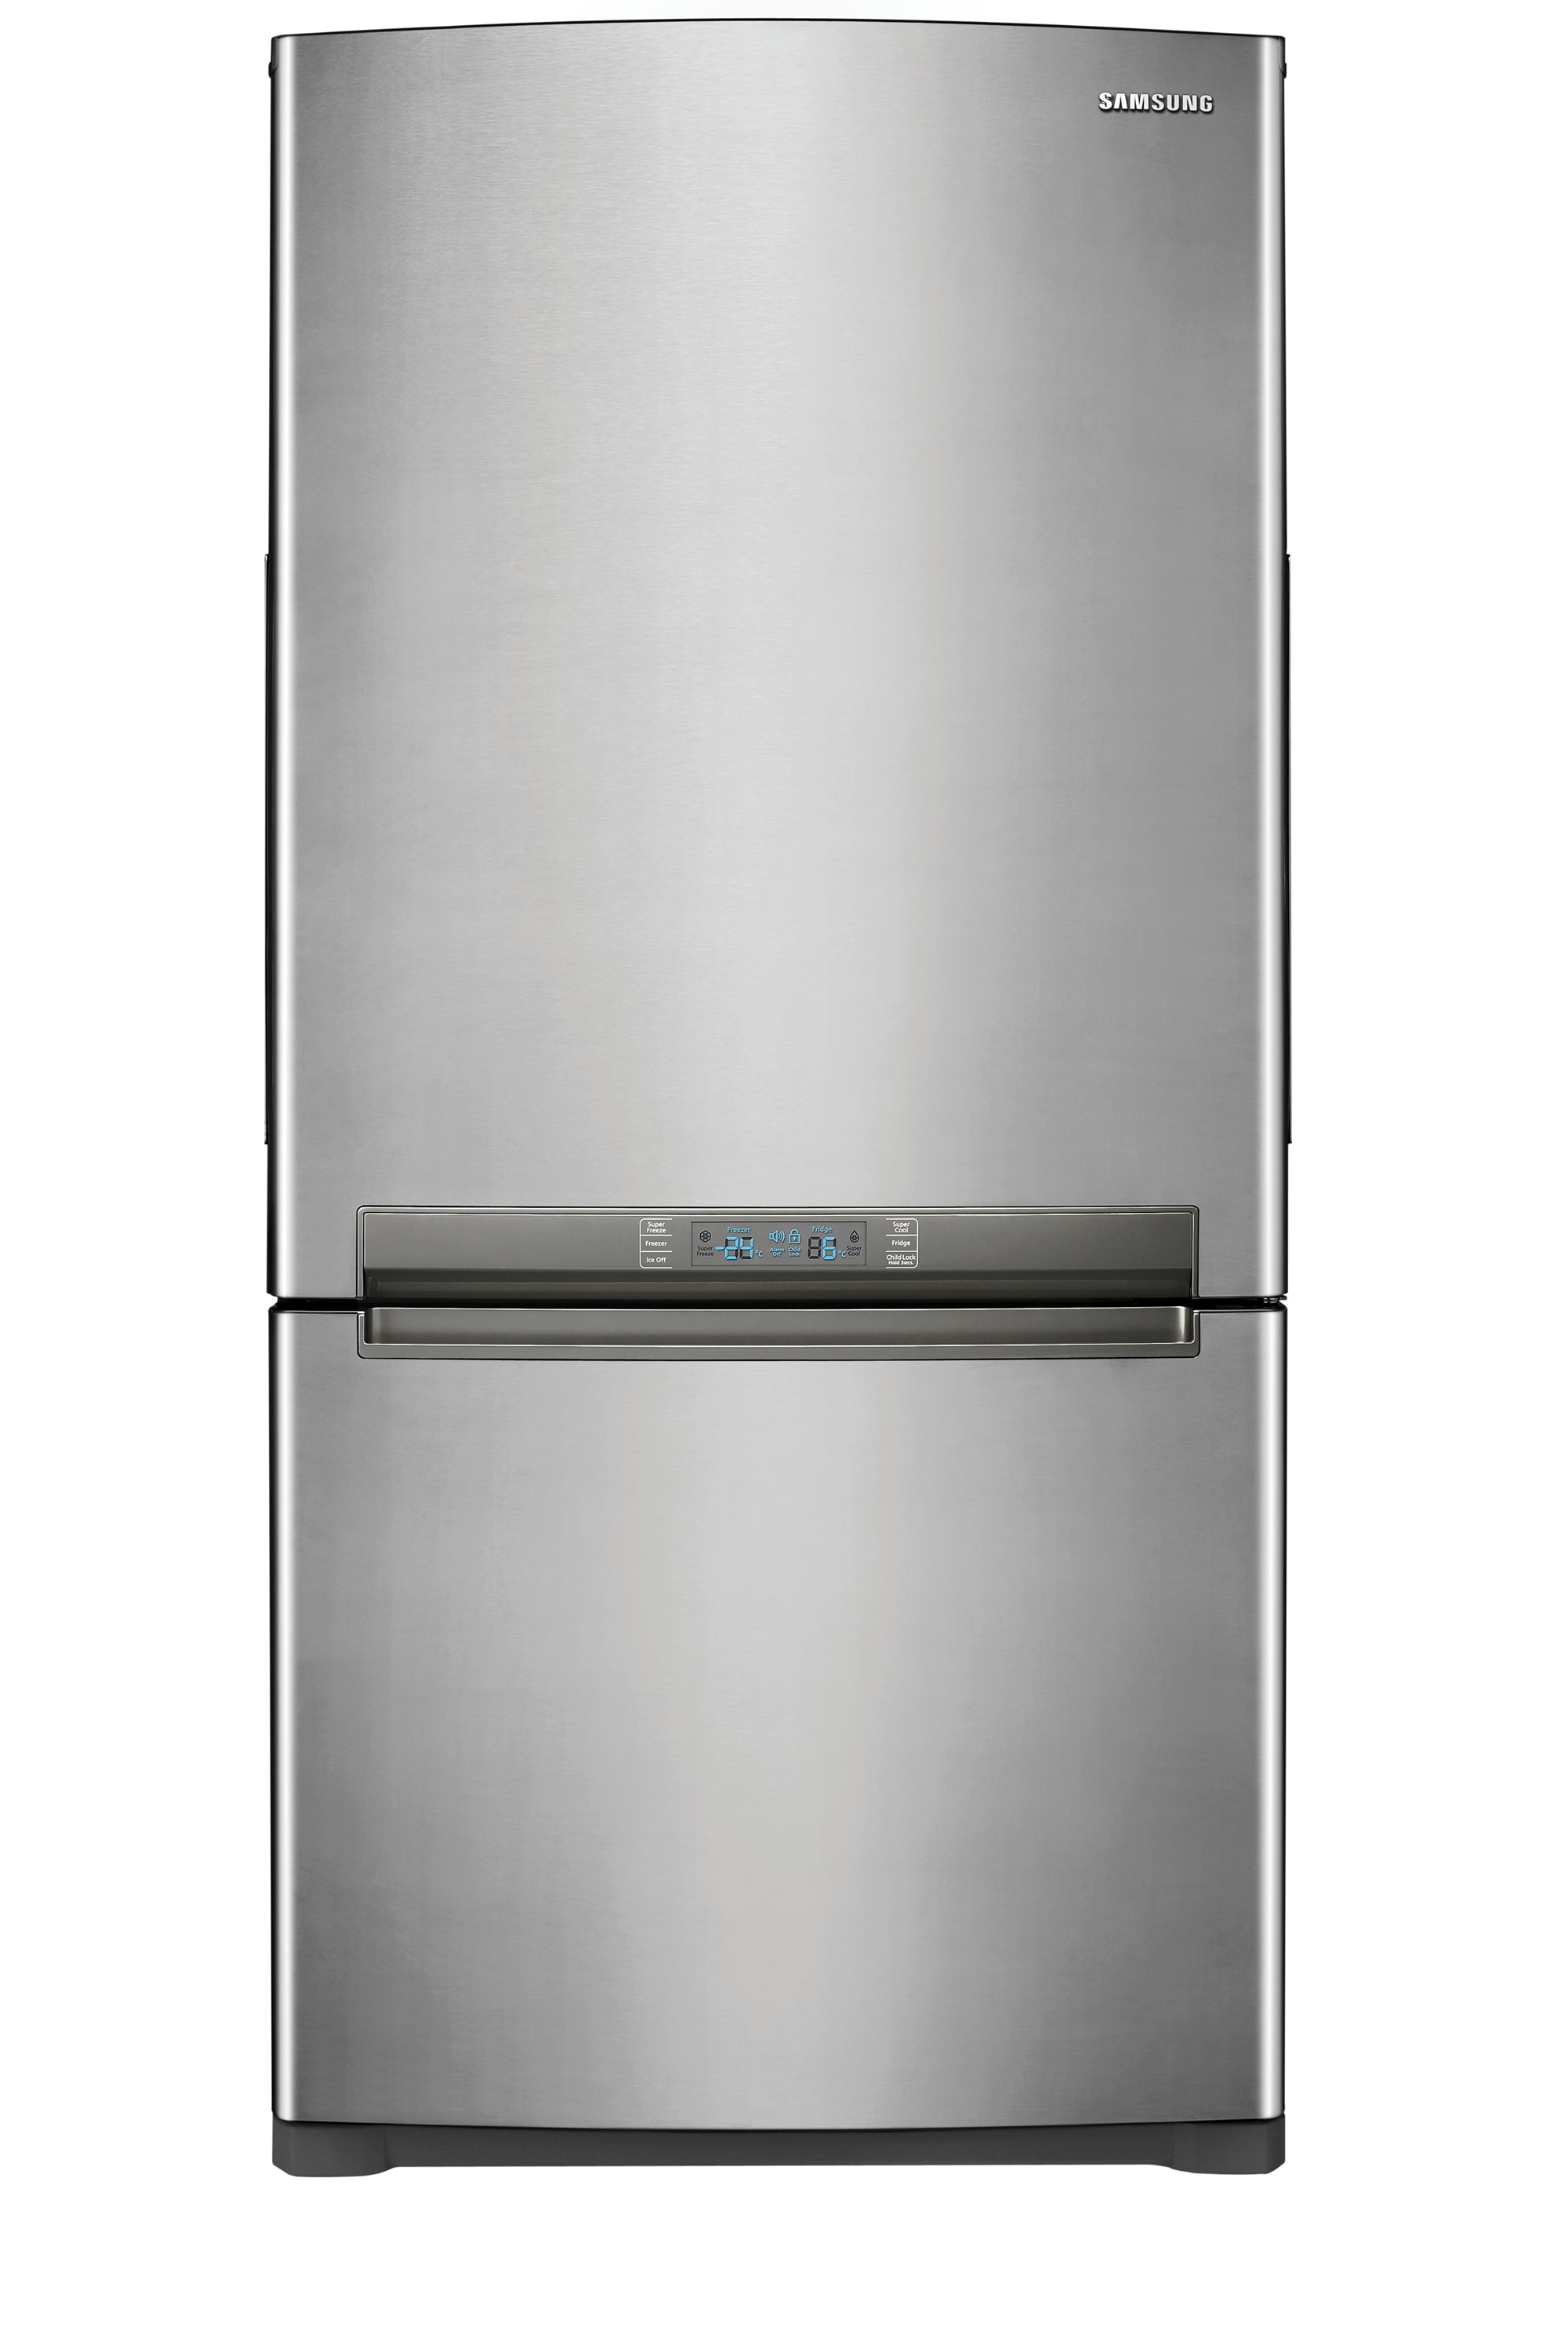 RB196ACRS 17.7 cu.ft Bottom Mount Freezer Refrigerator Stainless Steel